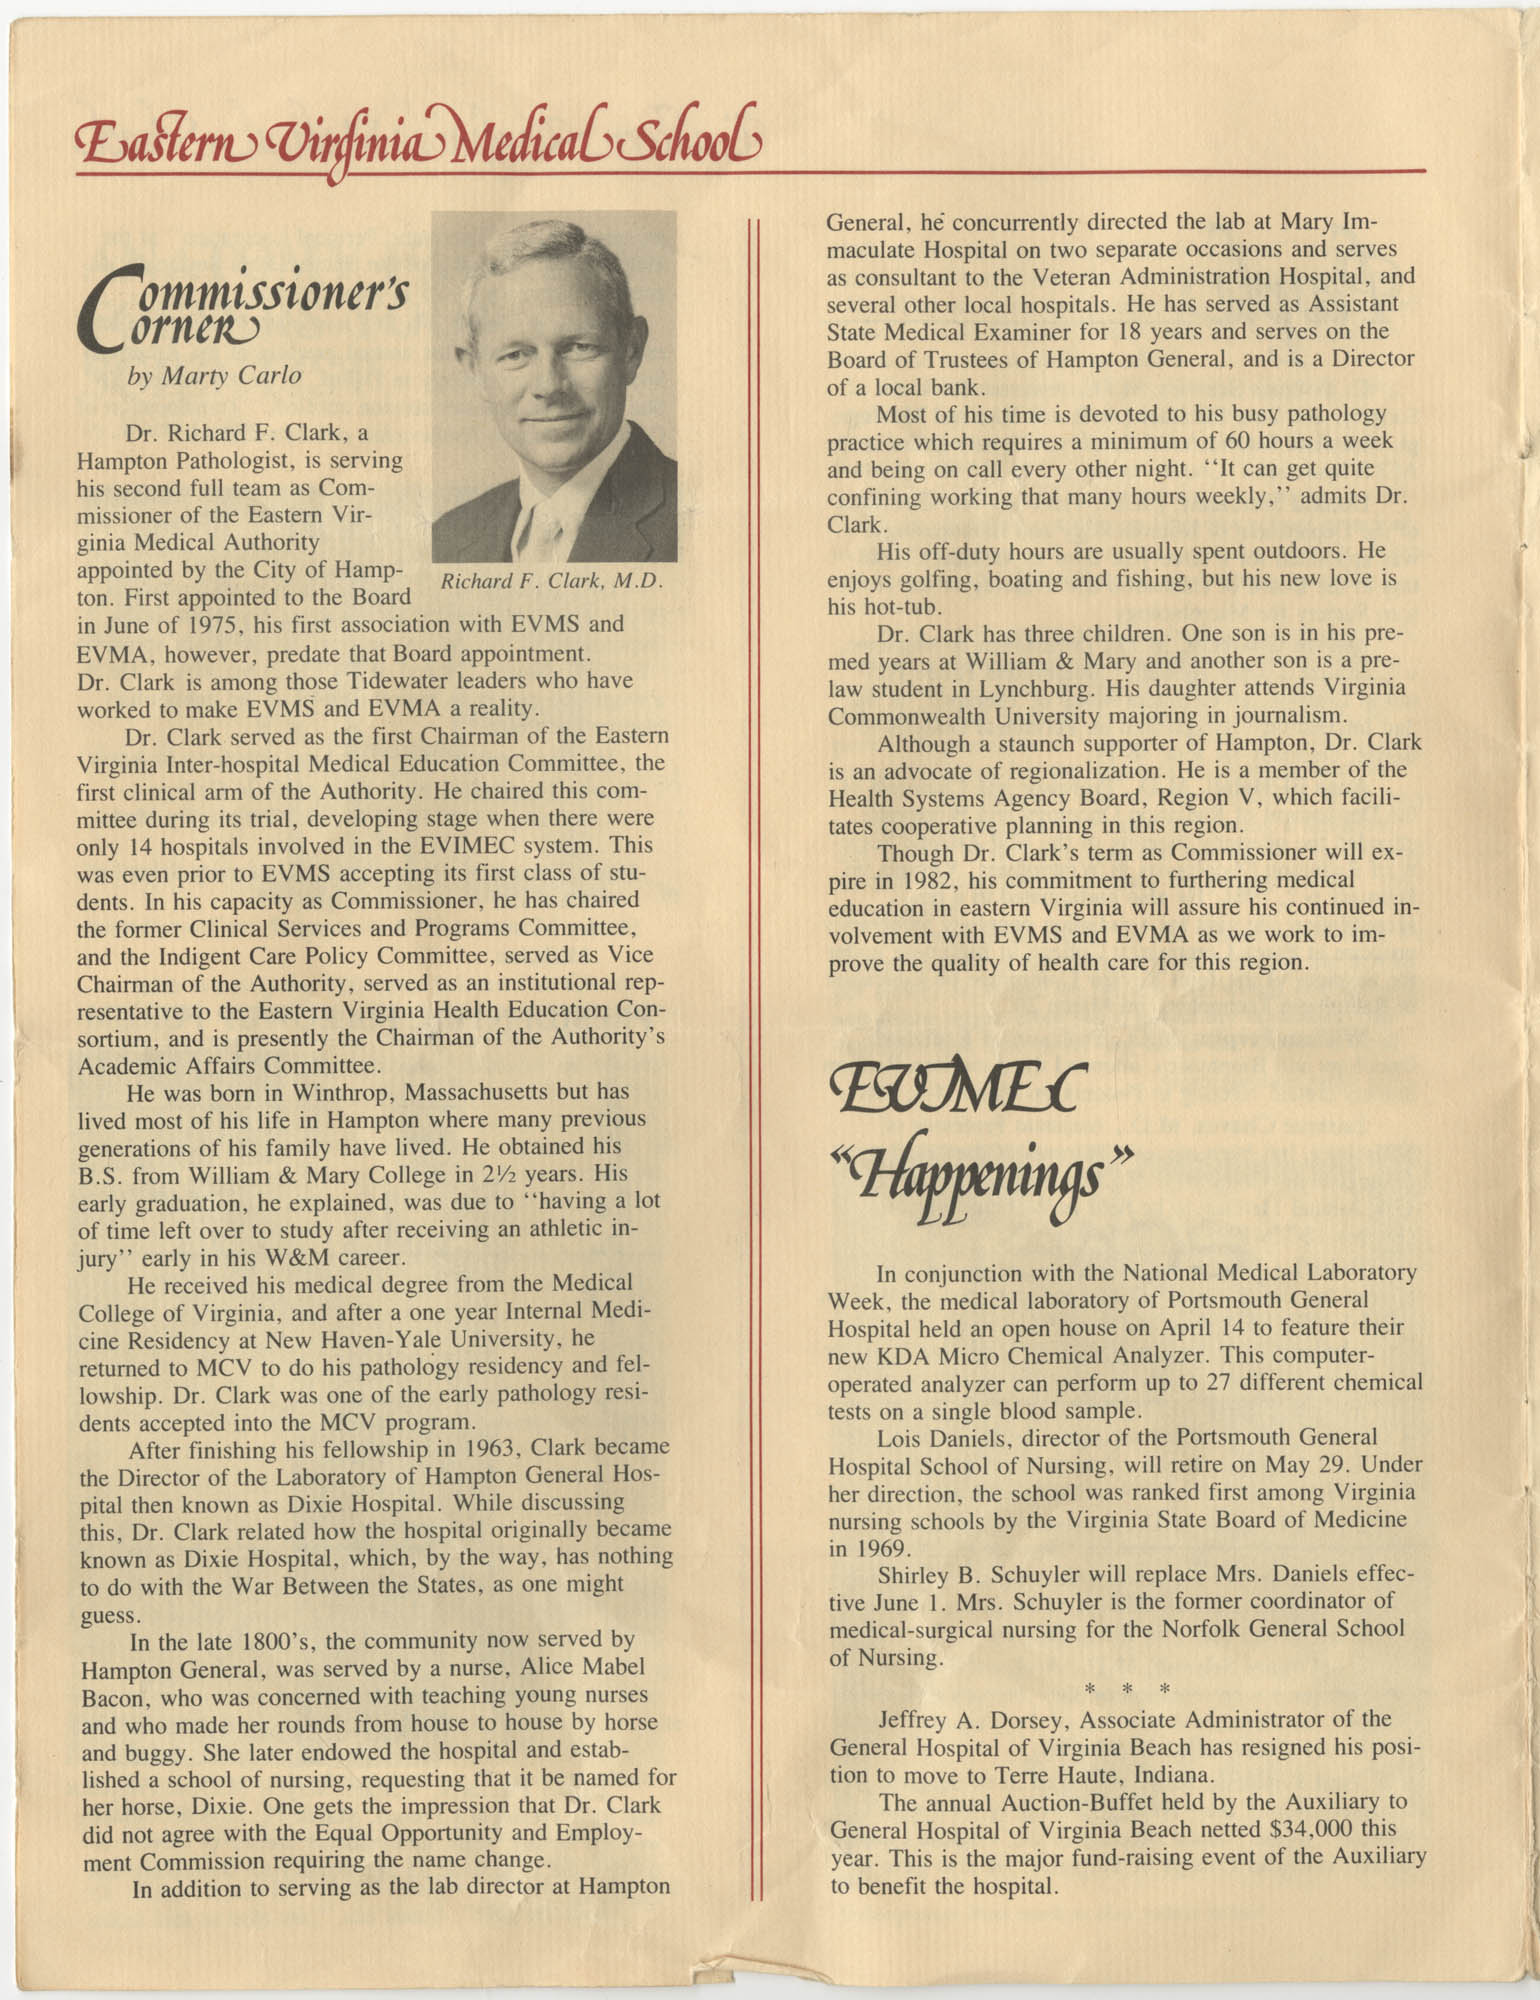 Eastern Virginia Medical School, Dean's Newsletter, Volume 4, Number 5, Page 4